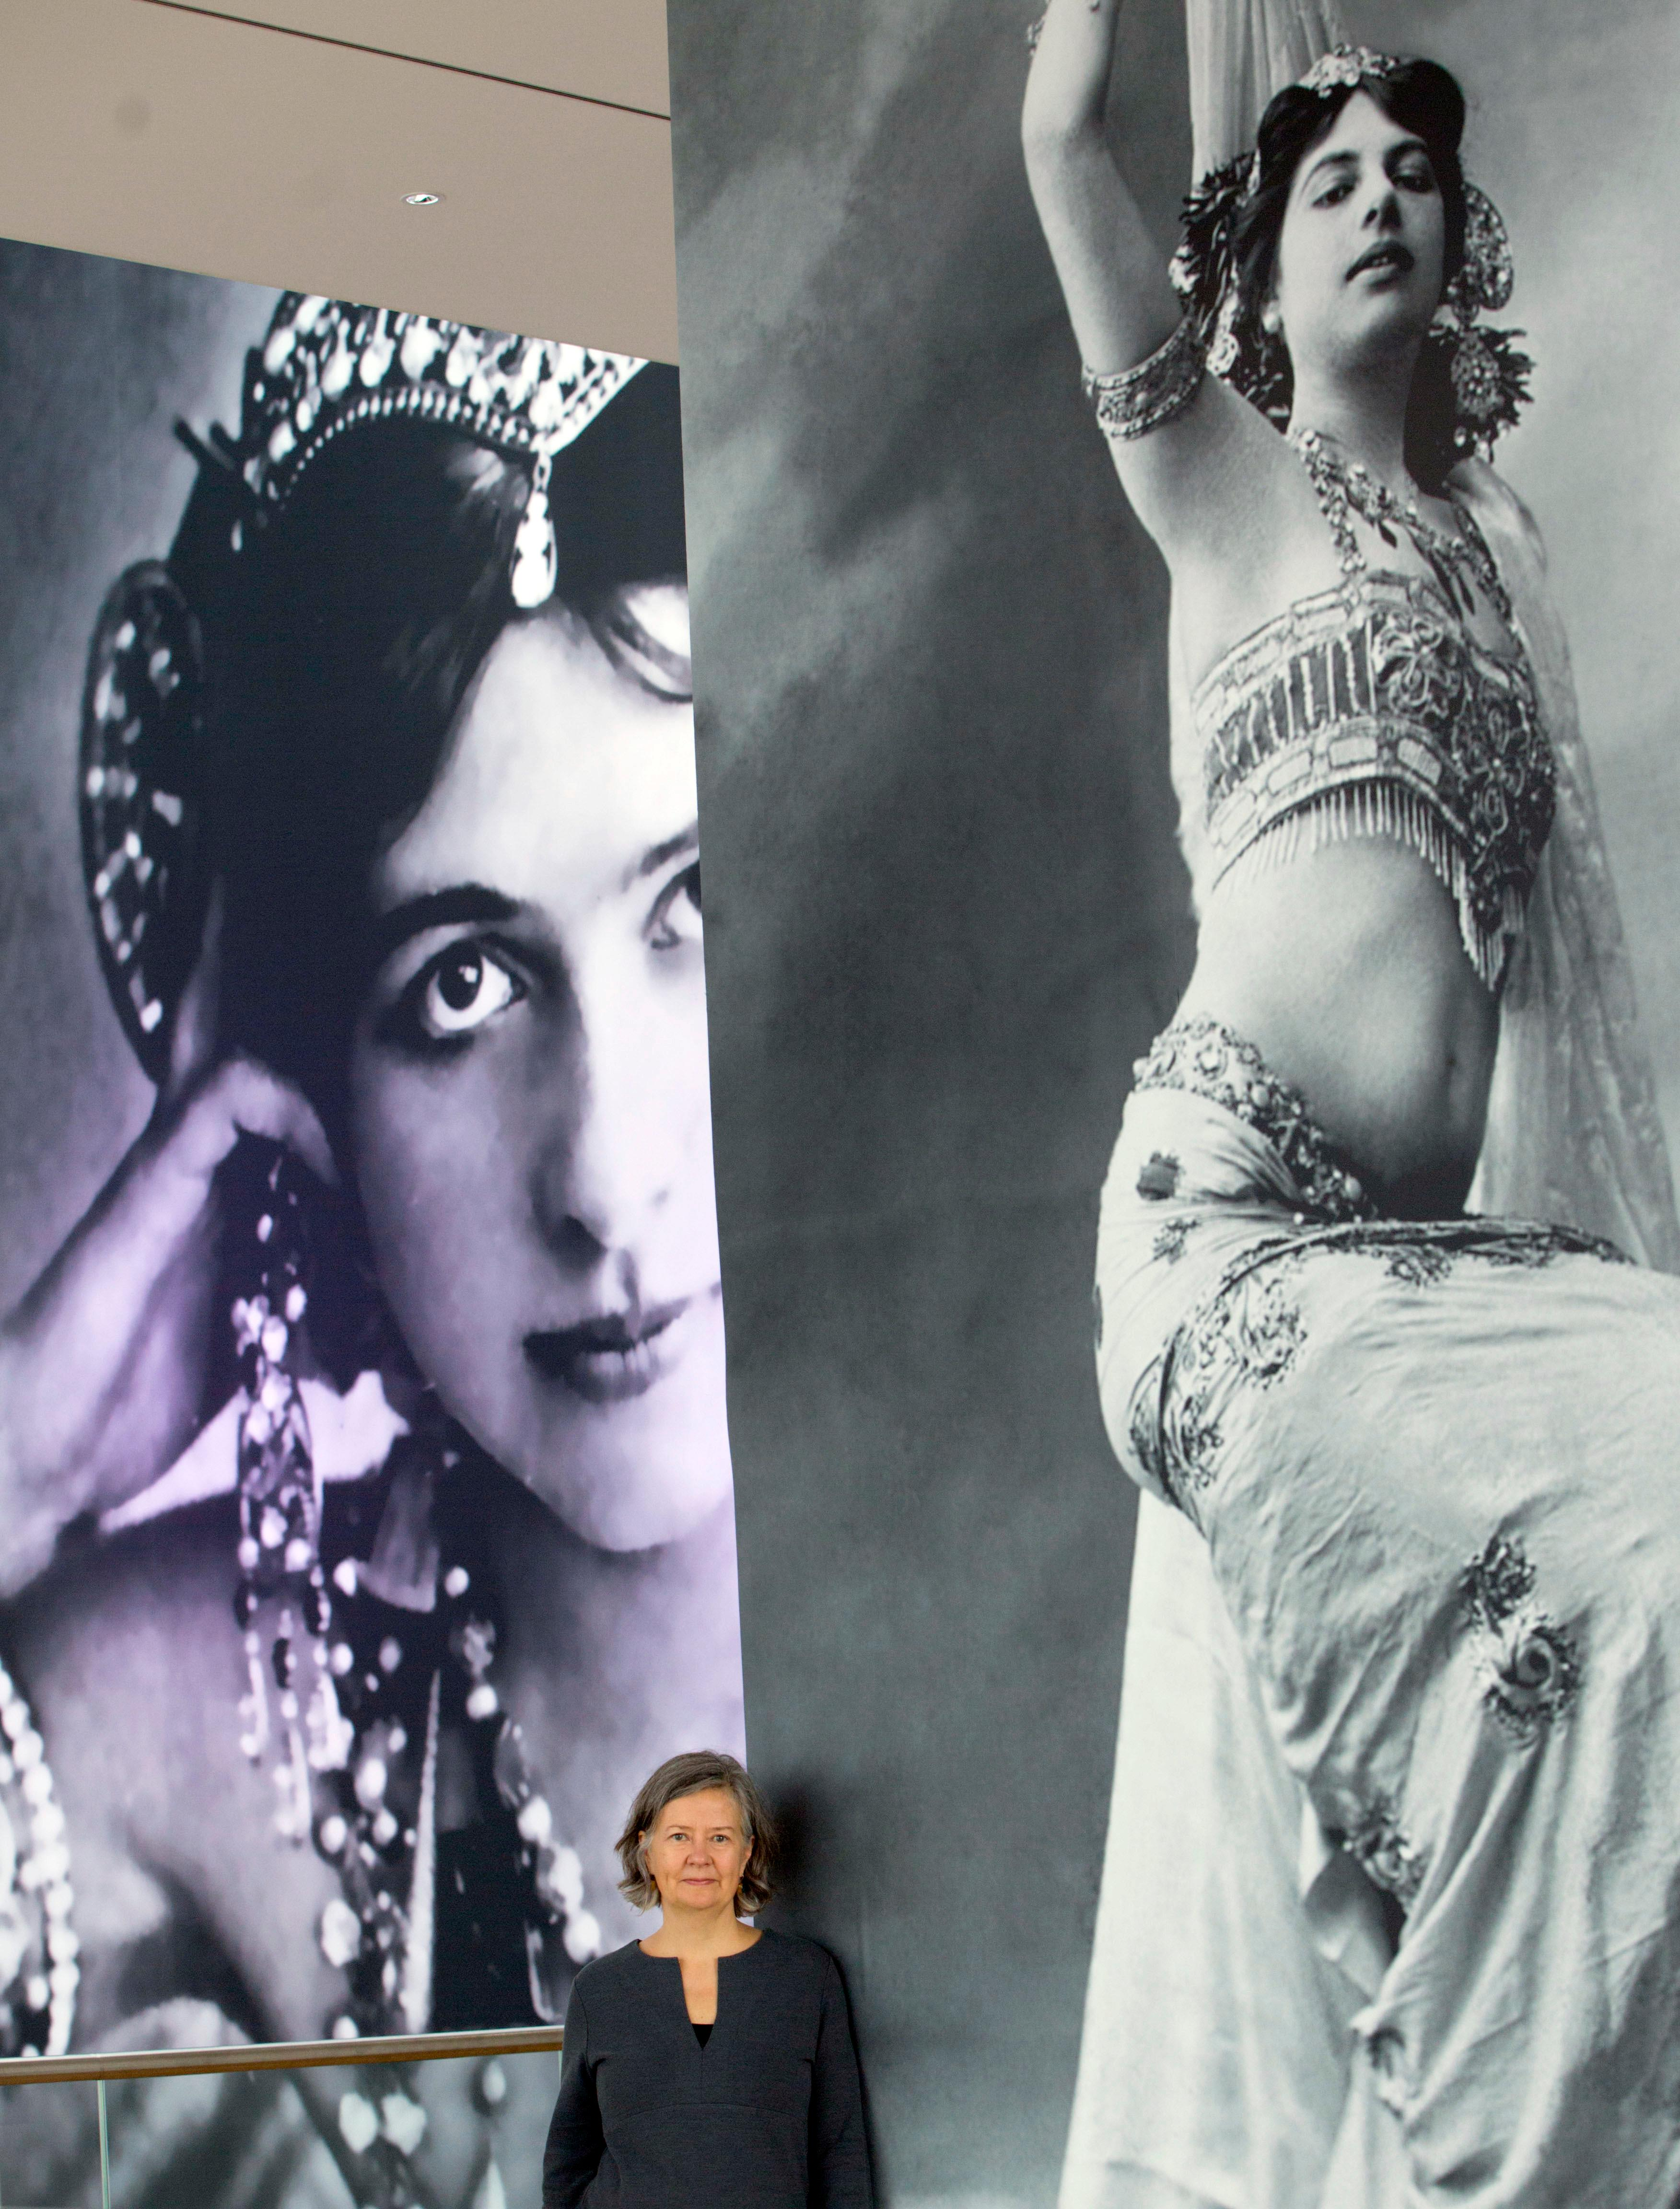 In this photo taken on Friday, Oct. 13, 2017, historian Julie Wheelright poses next to a giant poster of Margaretha Zelle, also known as Mata Hari, at the Fries Museum in Leeuwarden, Netherlands. A century ago, on Oct. 15, 1917, an exotic dancer named Mata Hari was executed by a French firing squad, condemned as a sultry Dutch double agent who supposedly led tens of thousands of soldiers to their death during World War I. (AP Photo/Virginia Mayo)